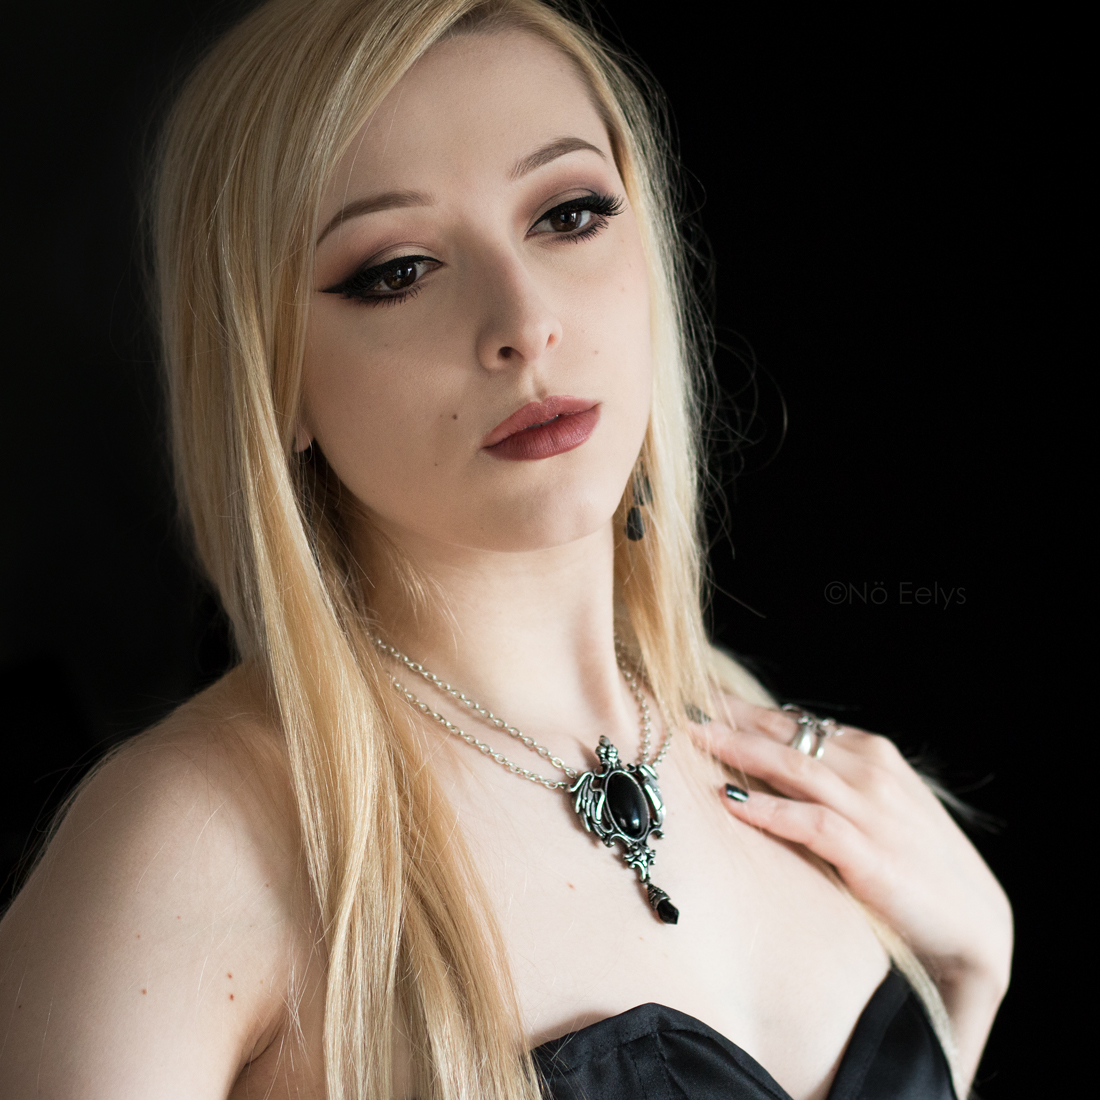 Collier Seraph Of Darkness Alchemy Gothic porté (Alchemy England necklace worn) par Nö Eelys du blog gothique Le Boudoir de Nö